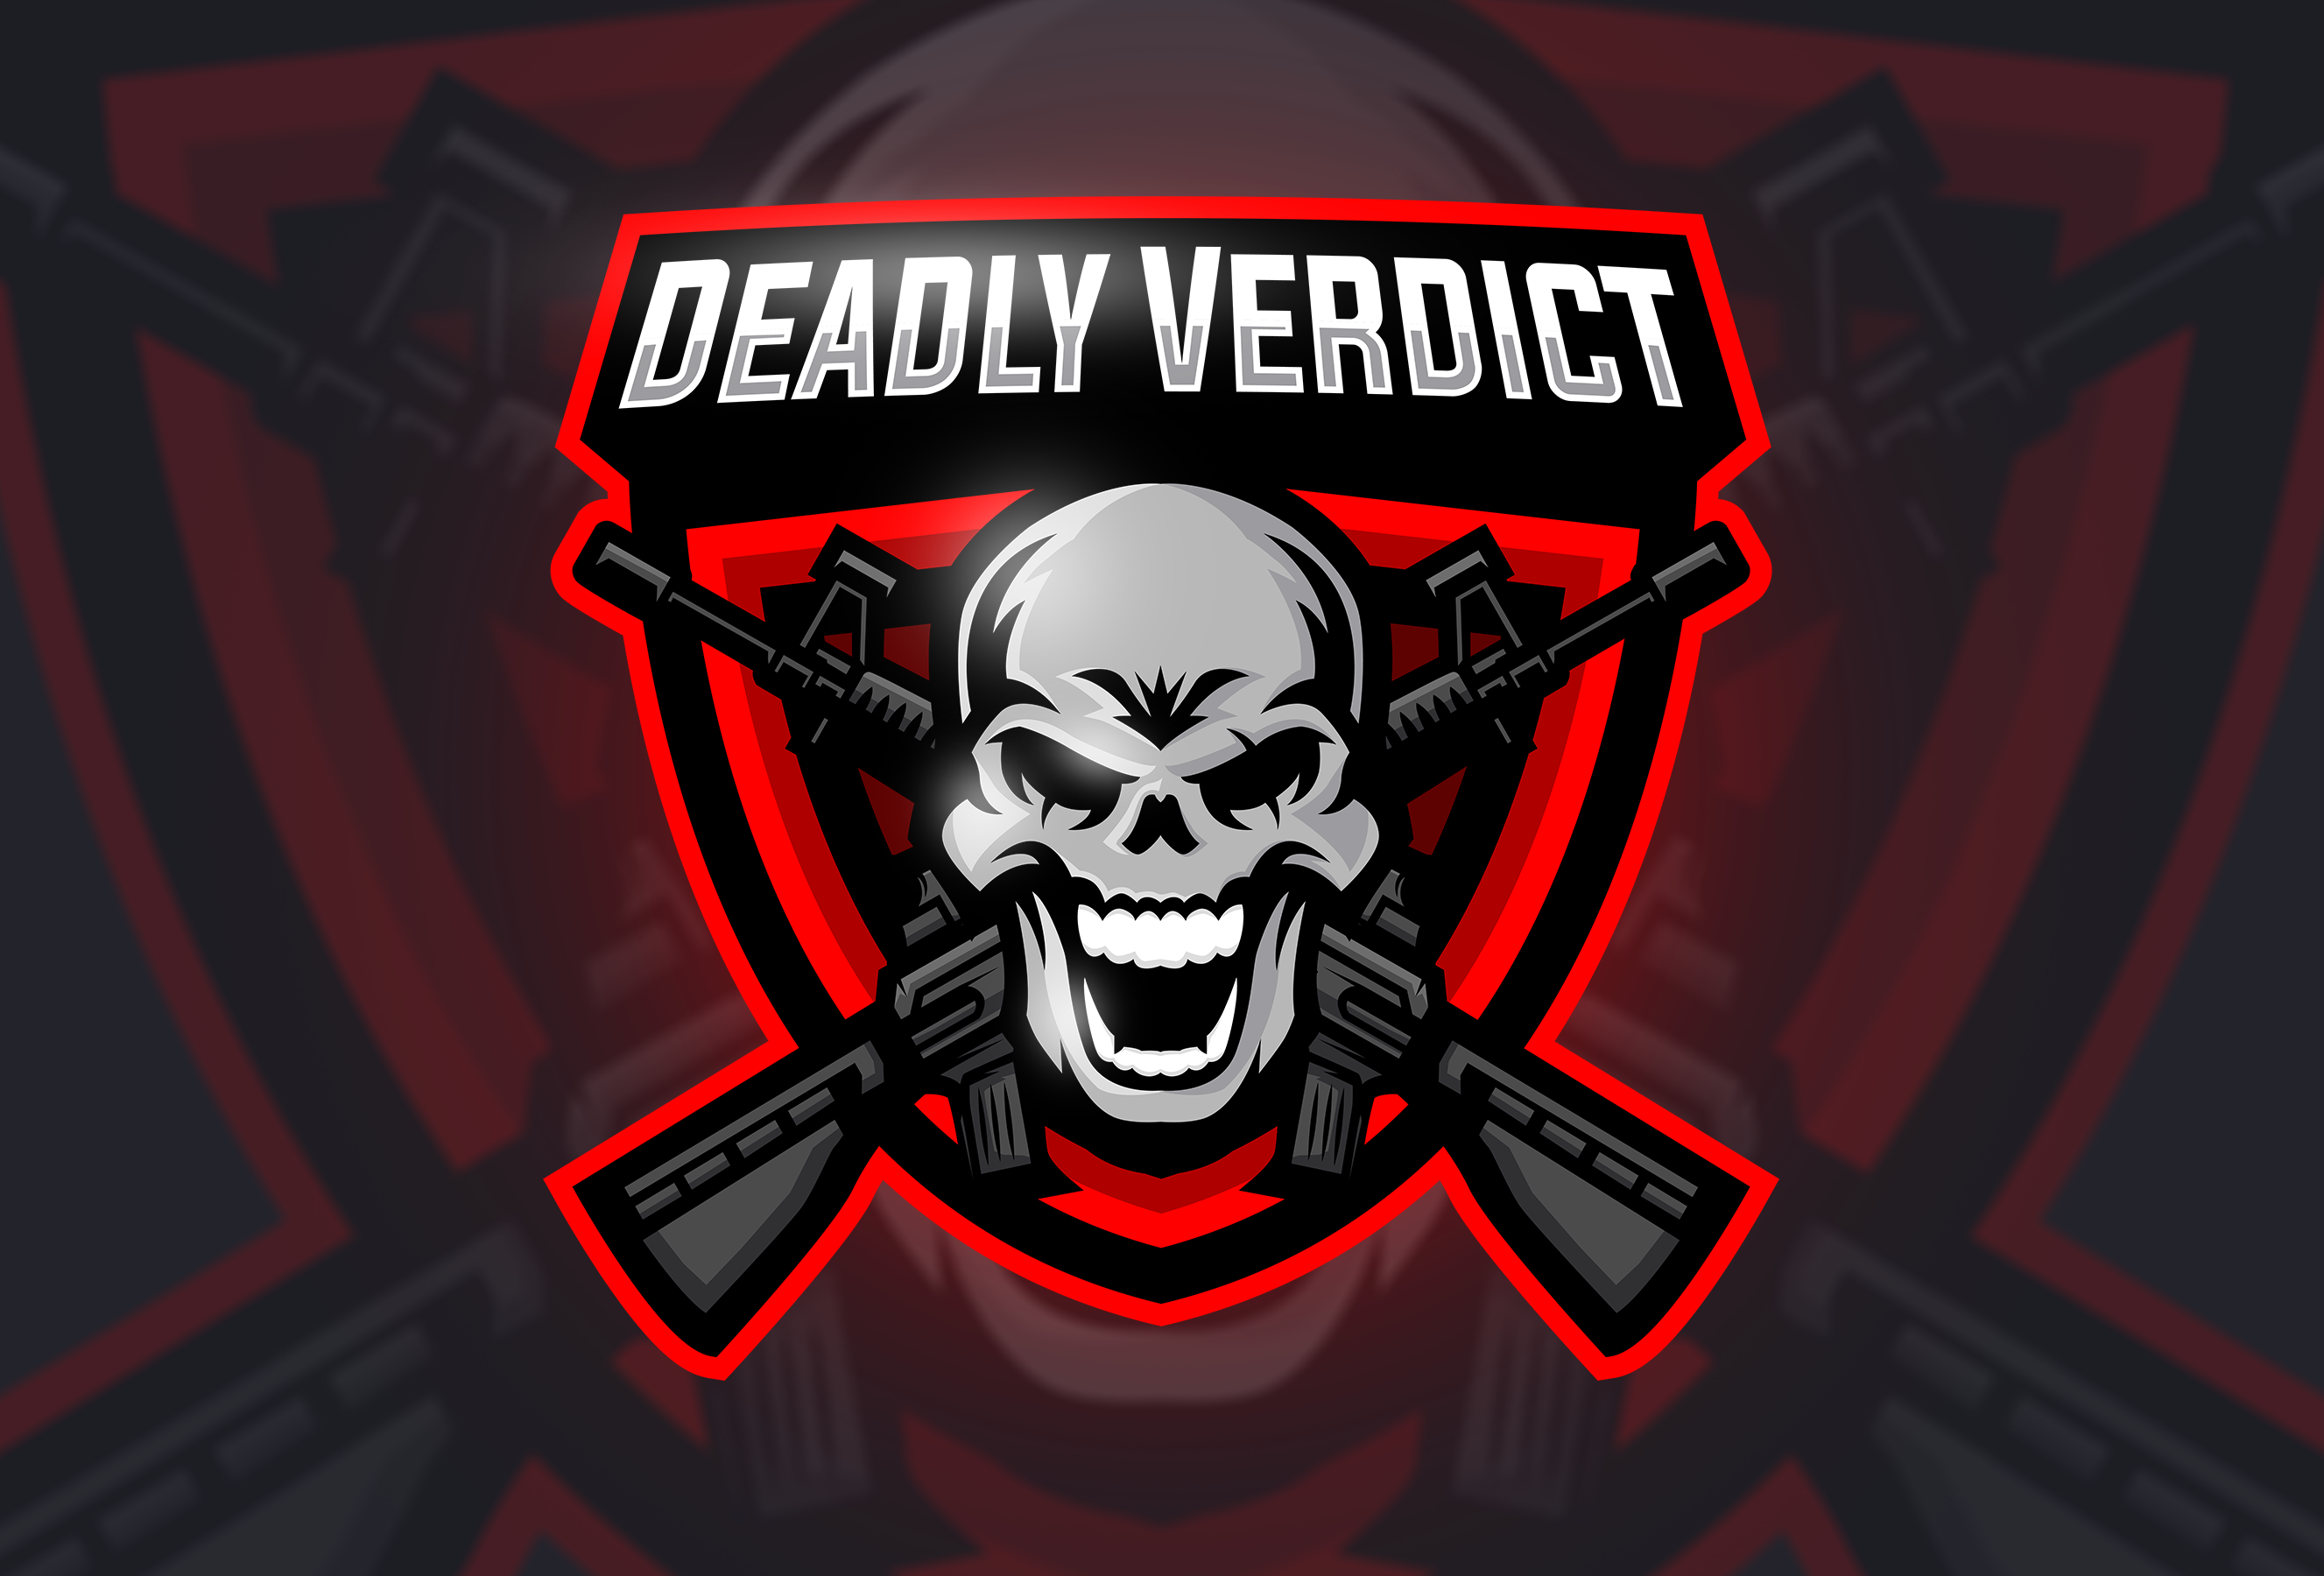 Deadly verdict prev